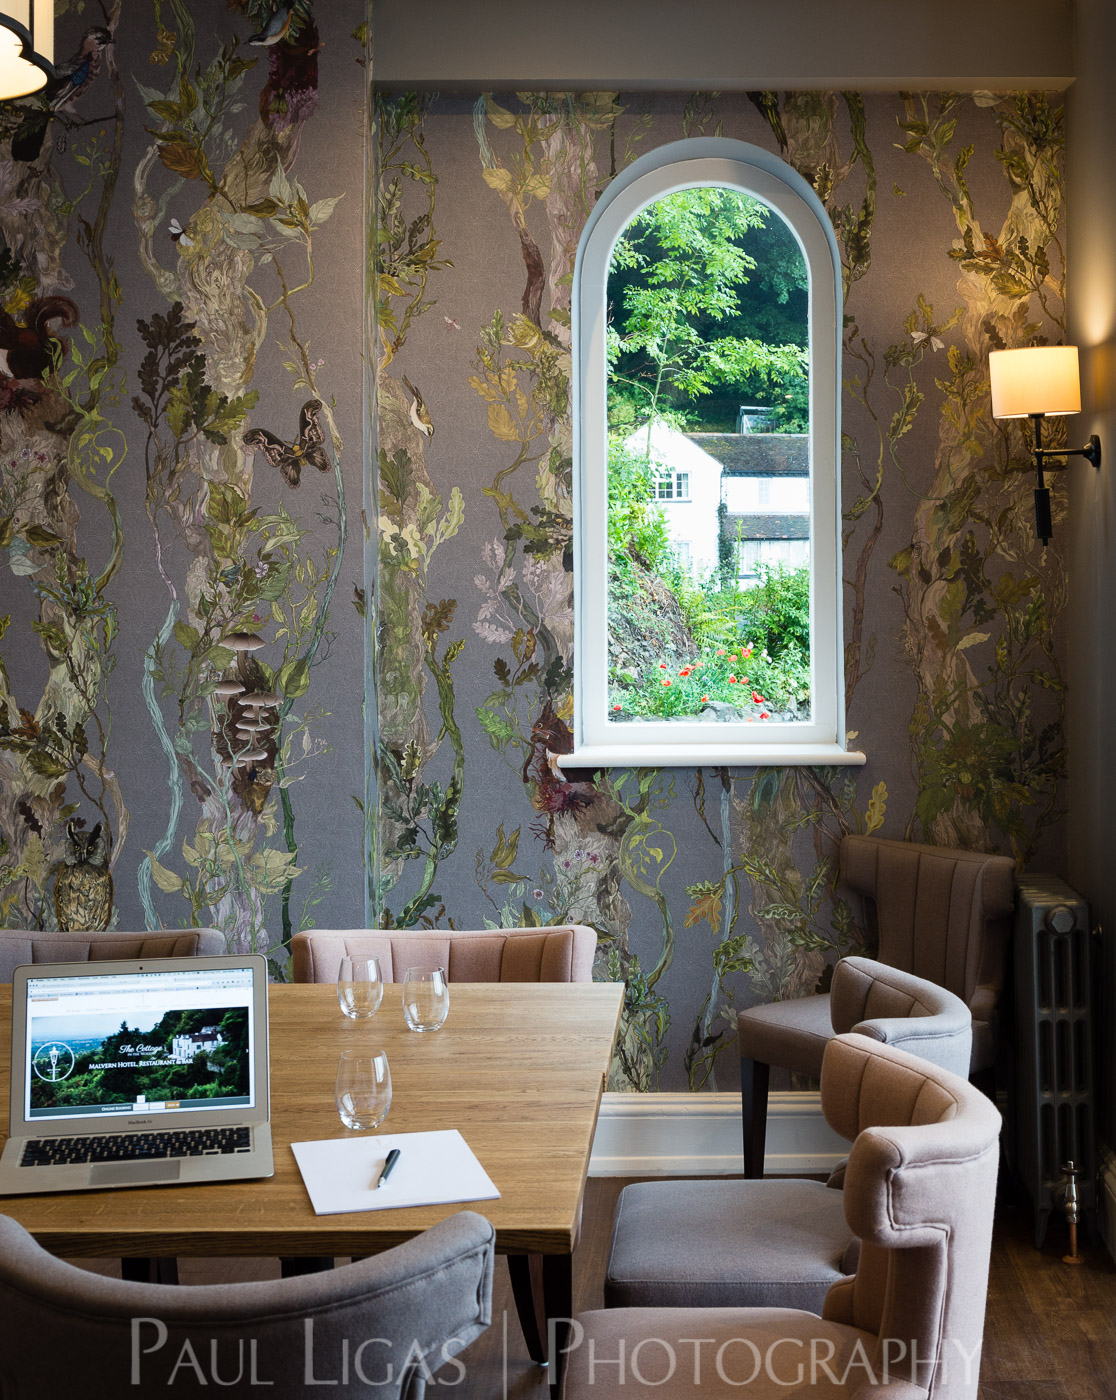 The Cottage In The Wood, Malvern, Worcestershire architecture property photographer herefordshire photography 4458